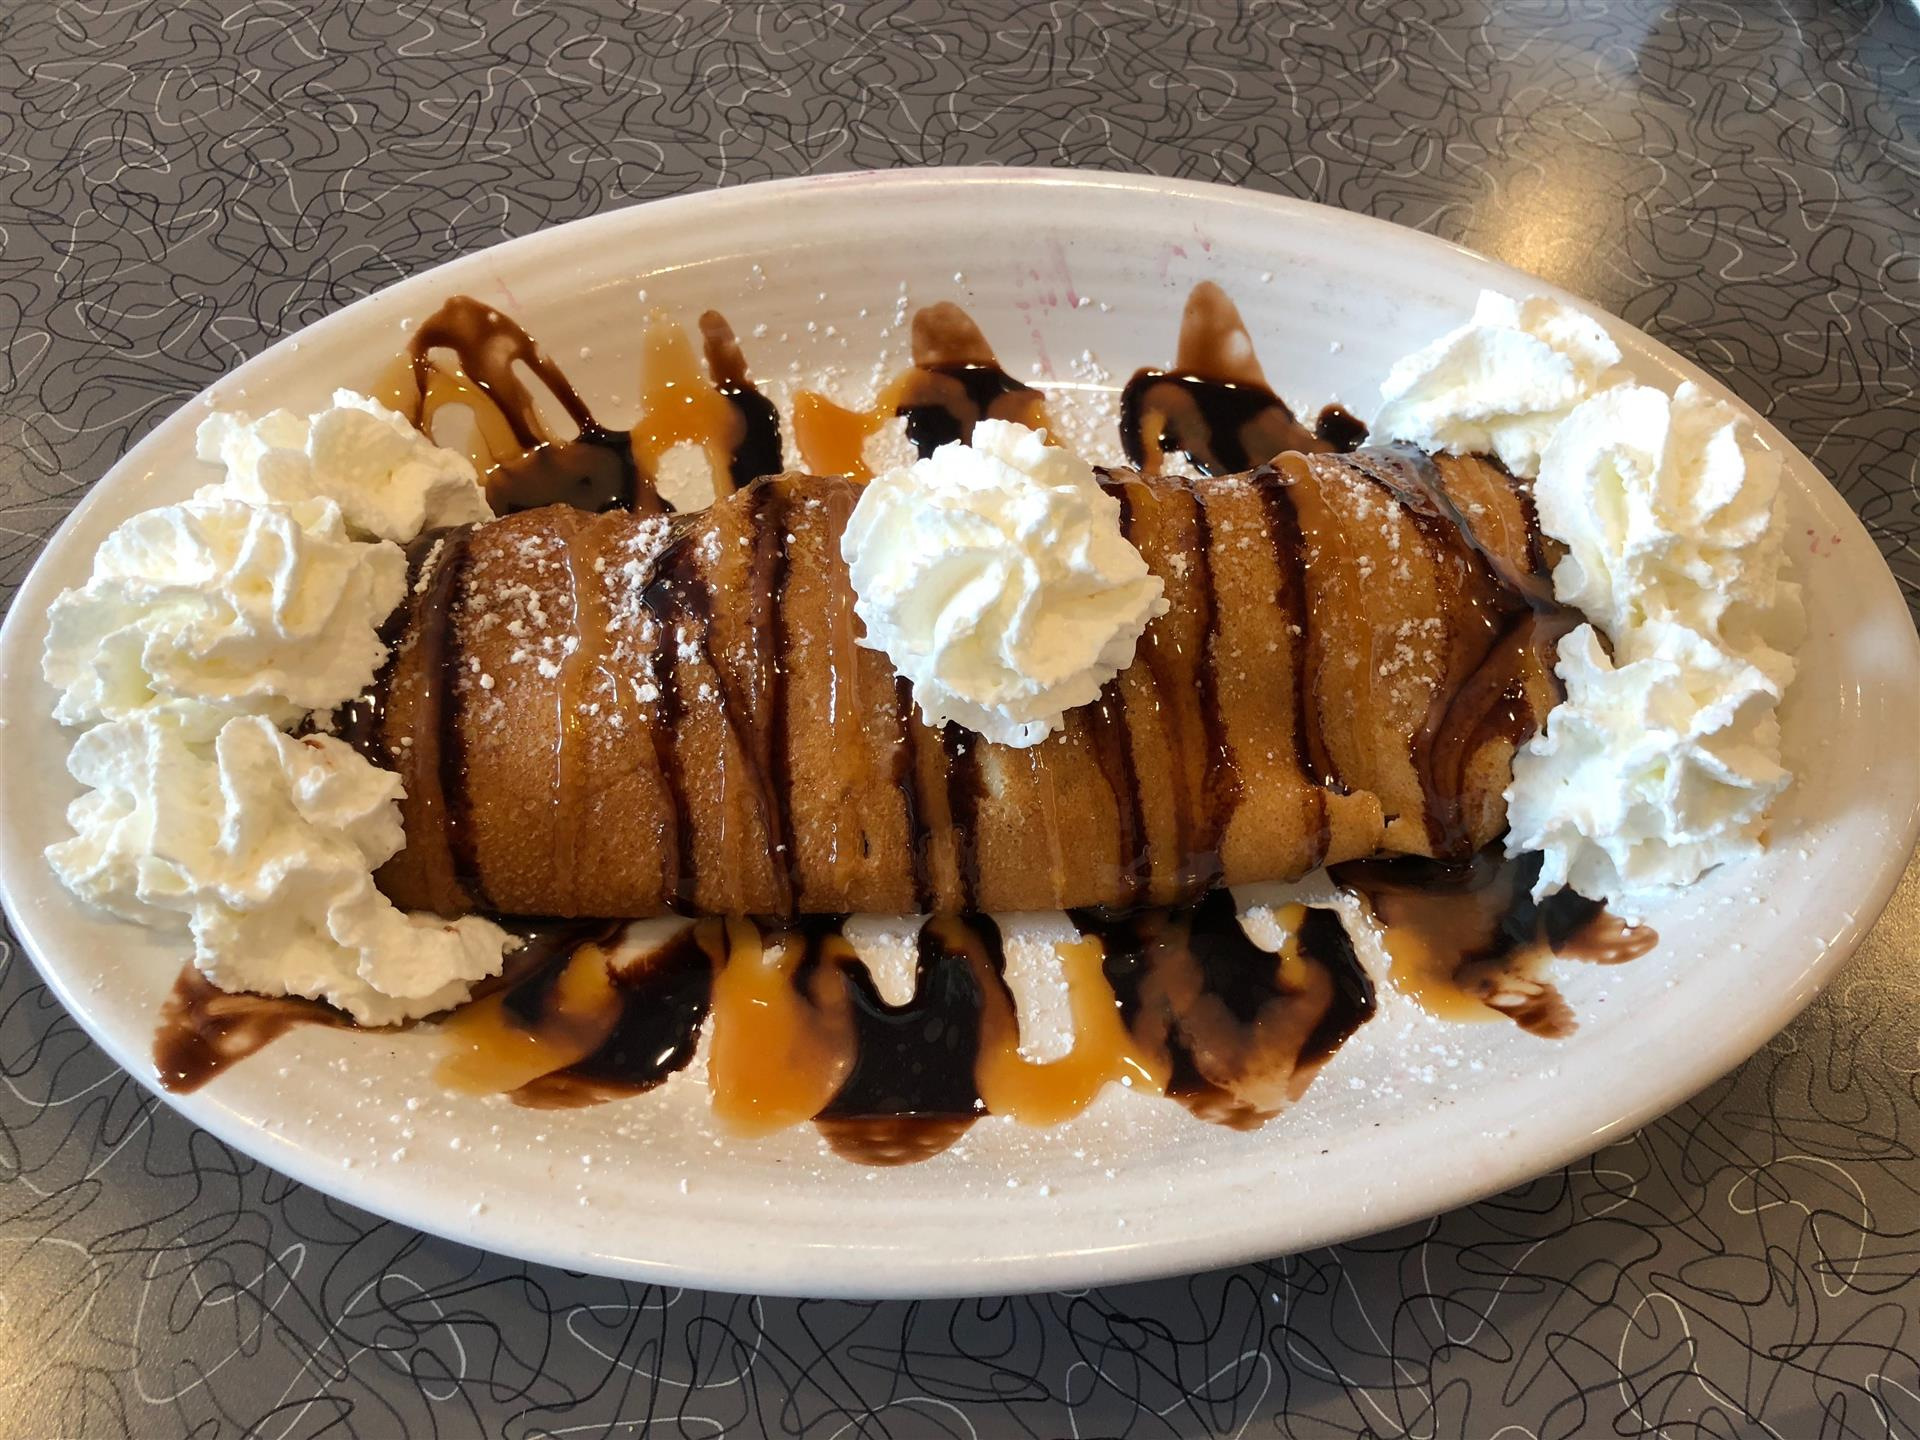 a breakfast crepe covered in whipped cream, and drizzled with chocolate syrup and caramel